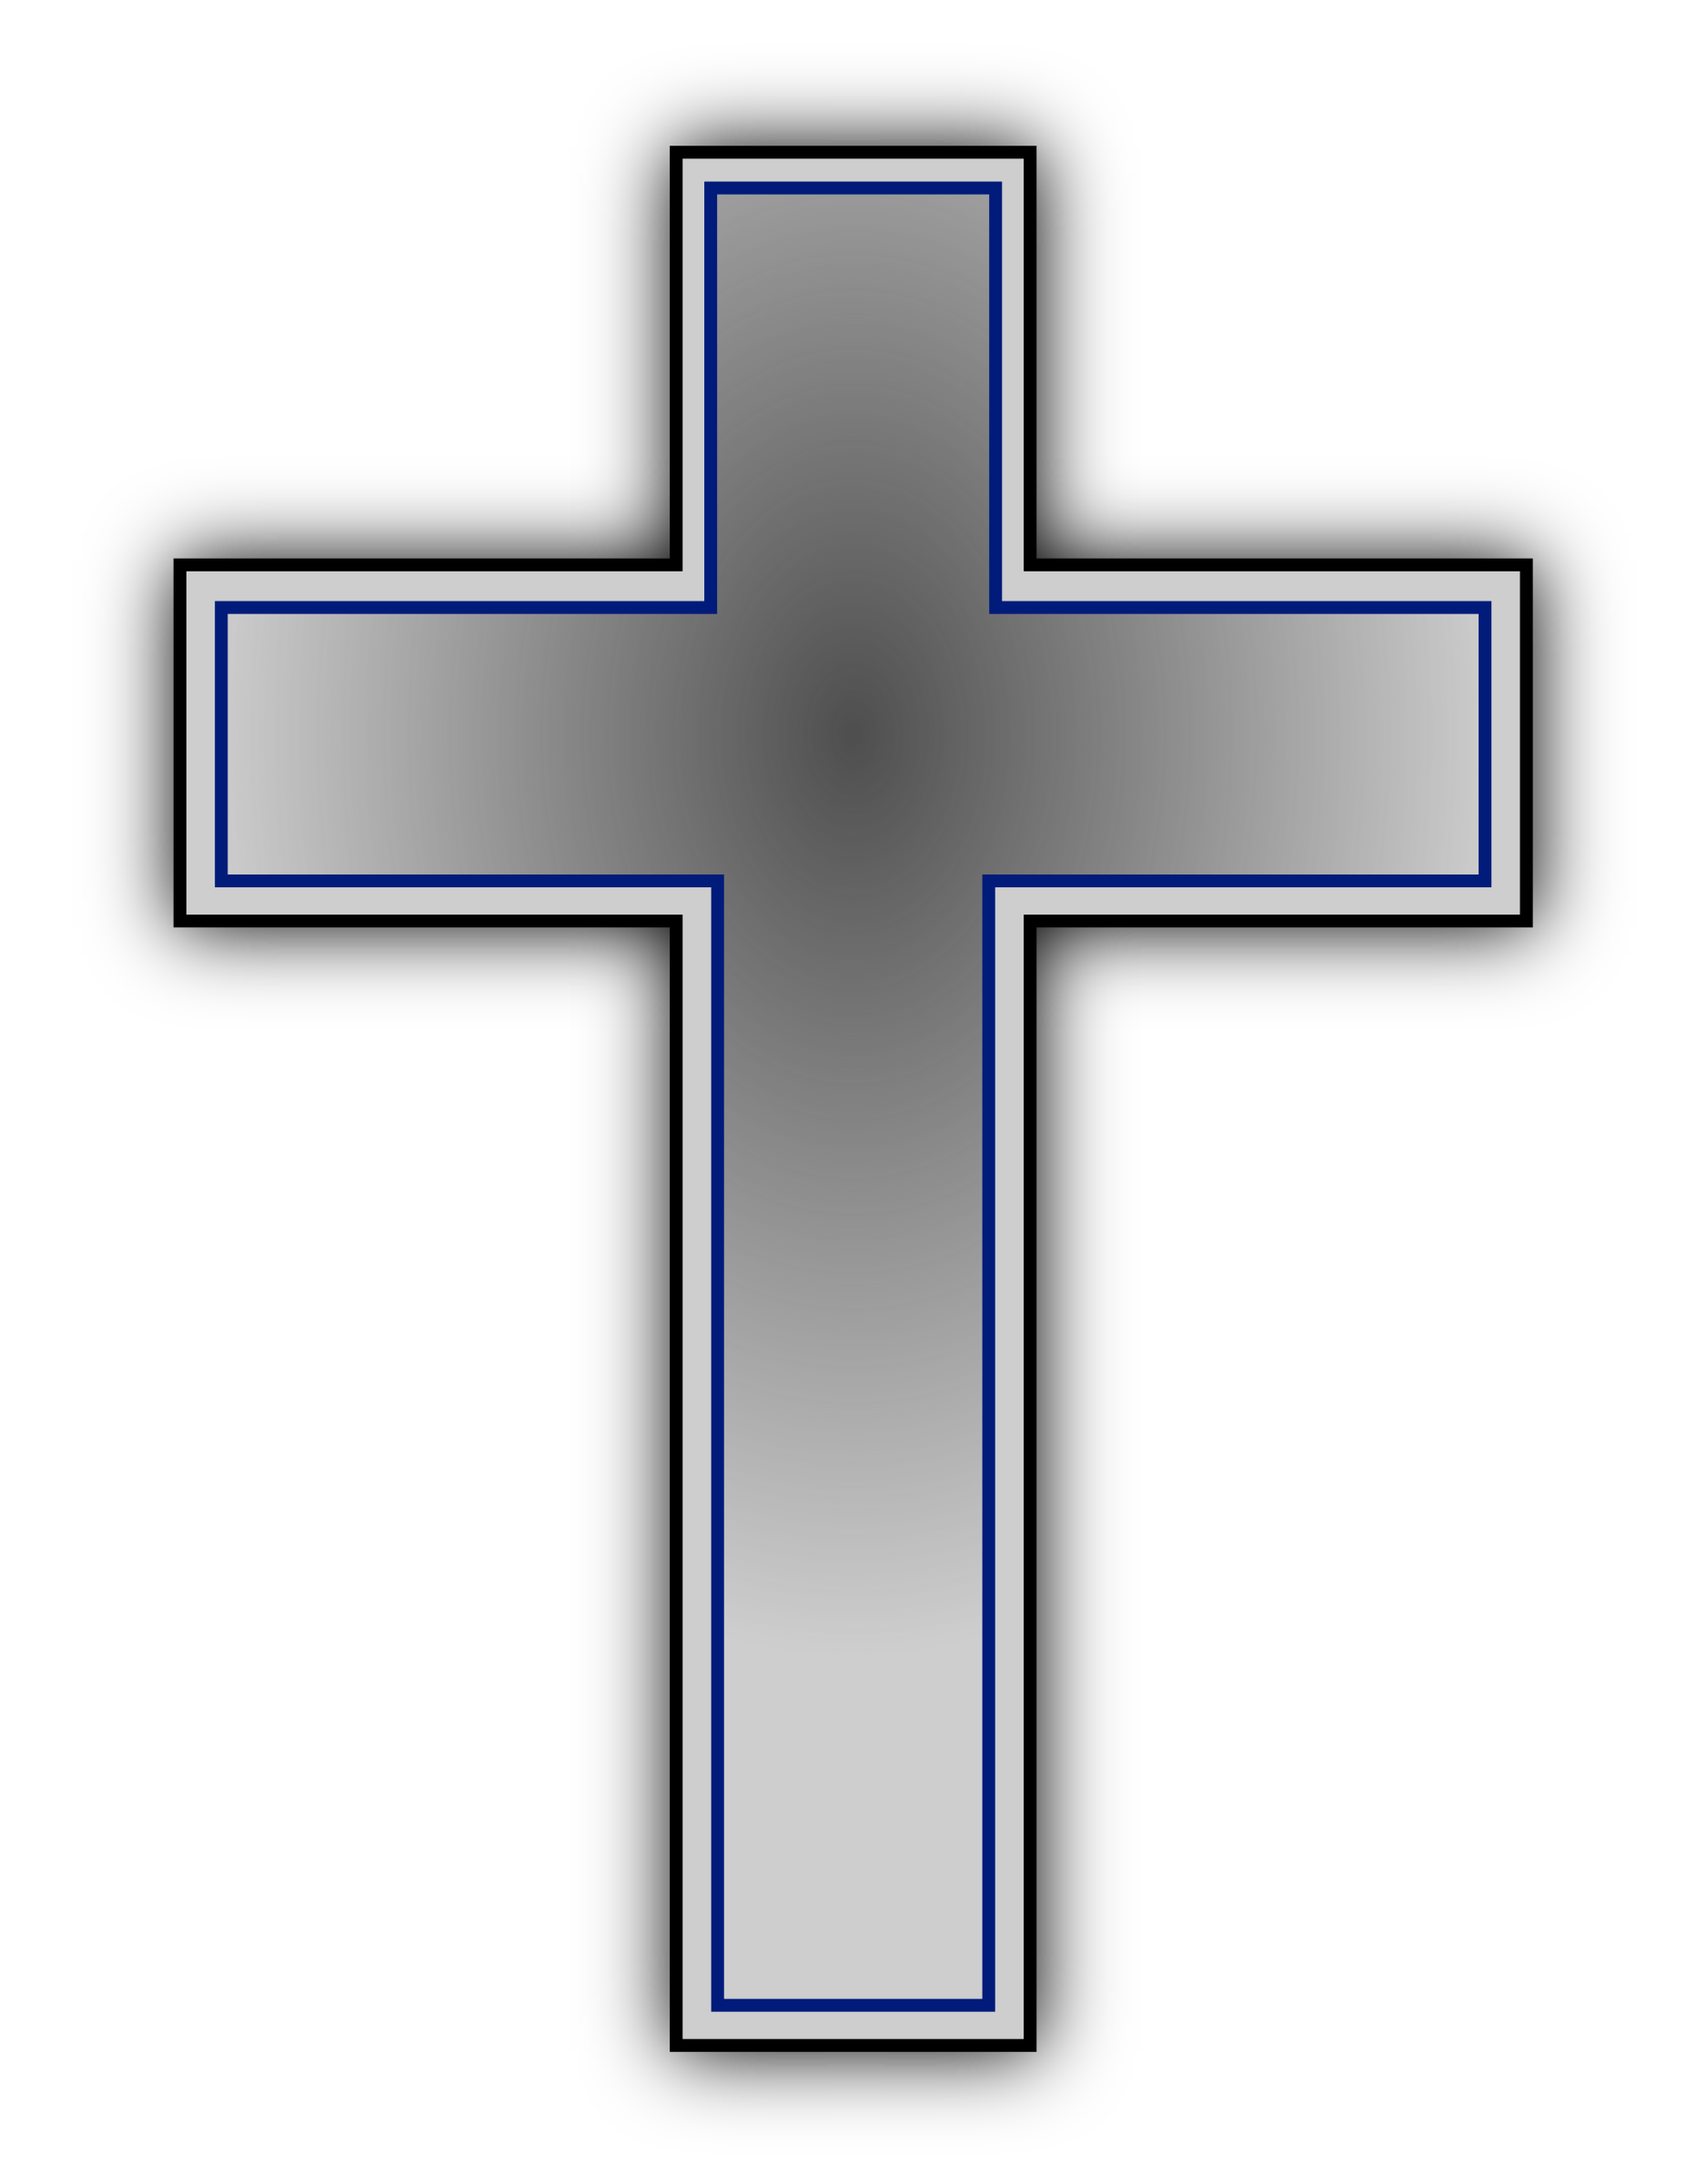 Crucifix clipart crucified jesus. Cross ii big image